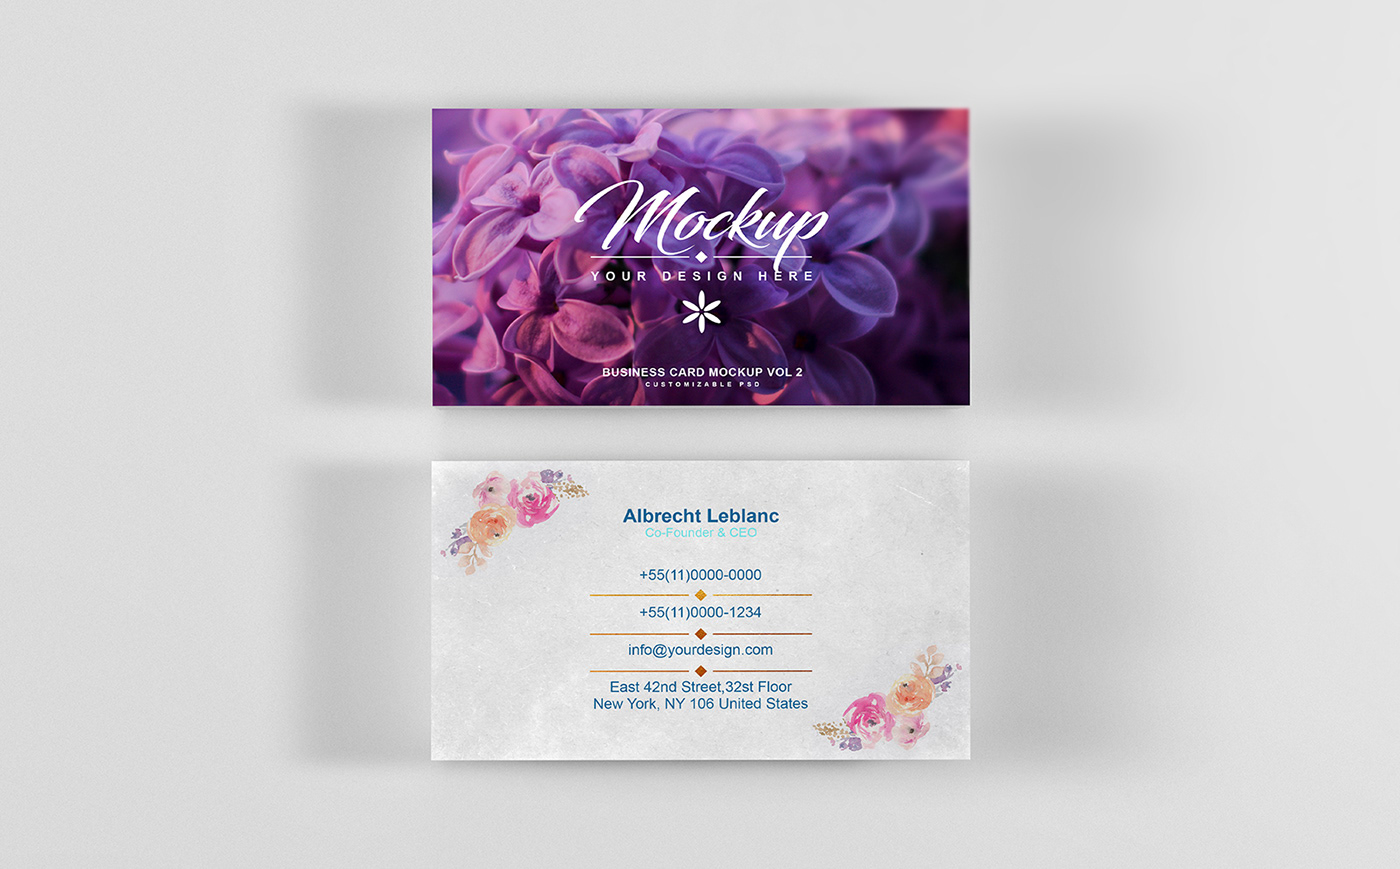 Business card mockup vol 2 psd download on behance zip file containing 7 psd files high quiality 300 dpi 2900 x 1800 px 1 pdf file download 7 business card mockup vol 2 reheart Gallery